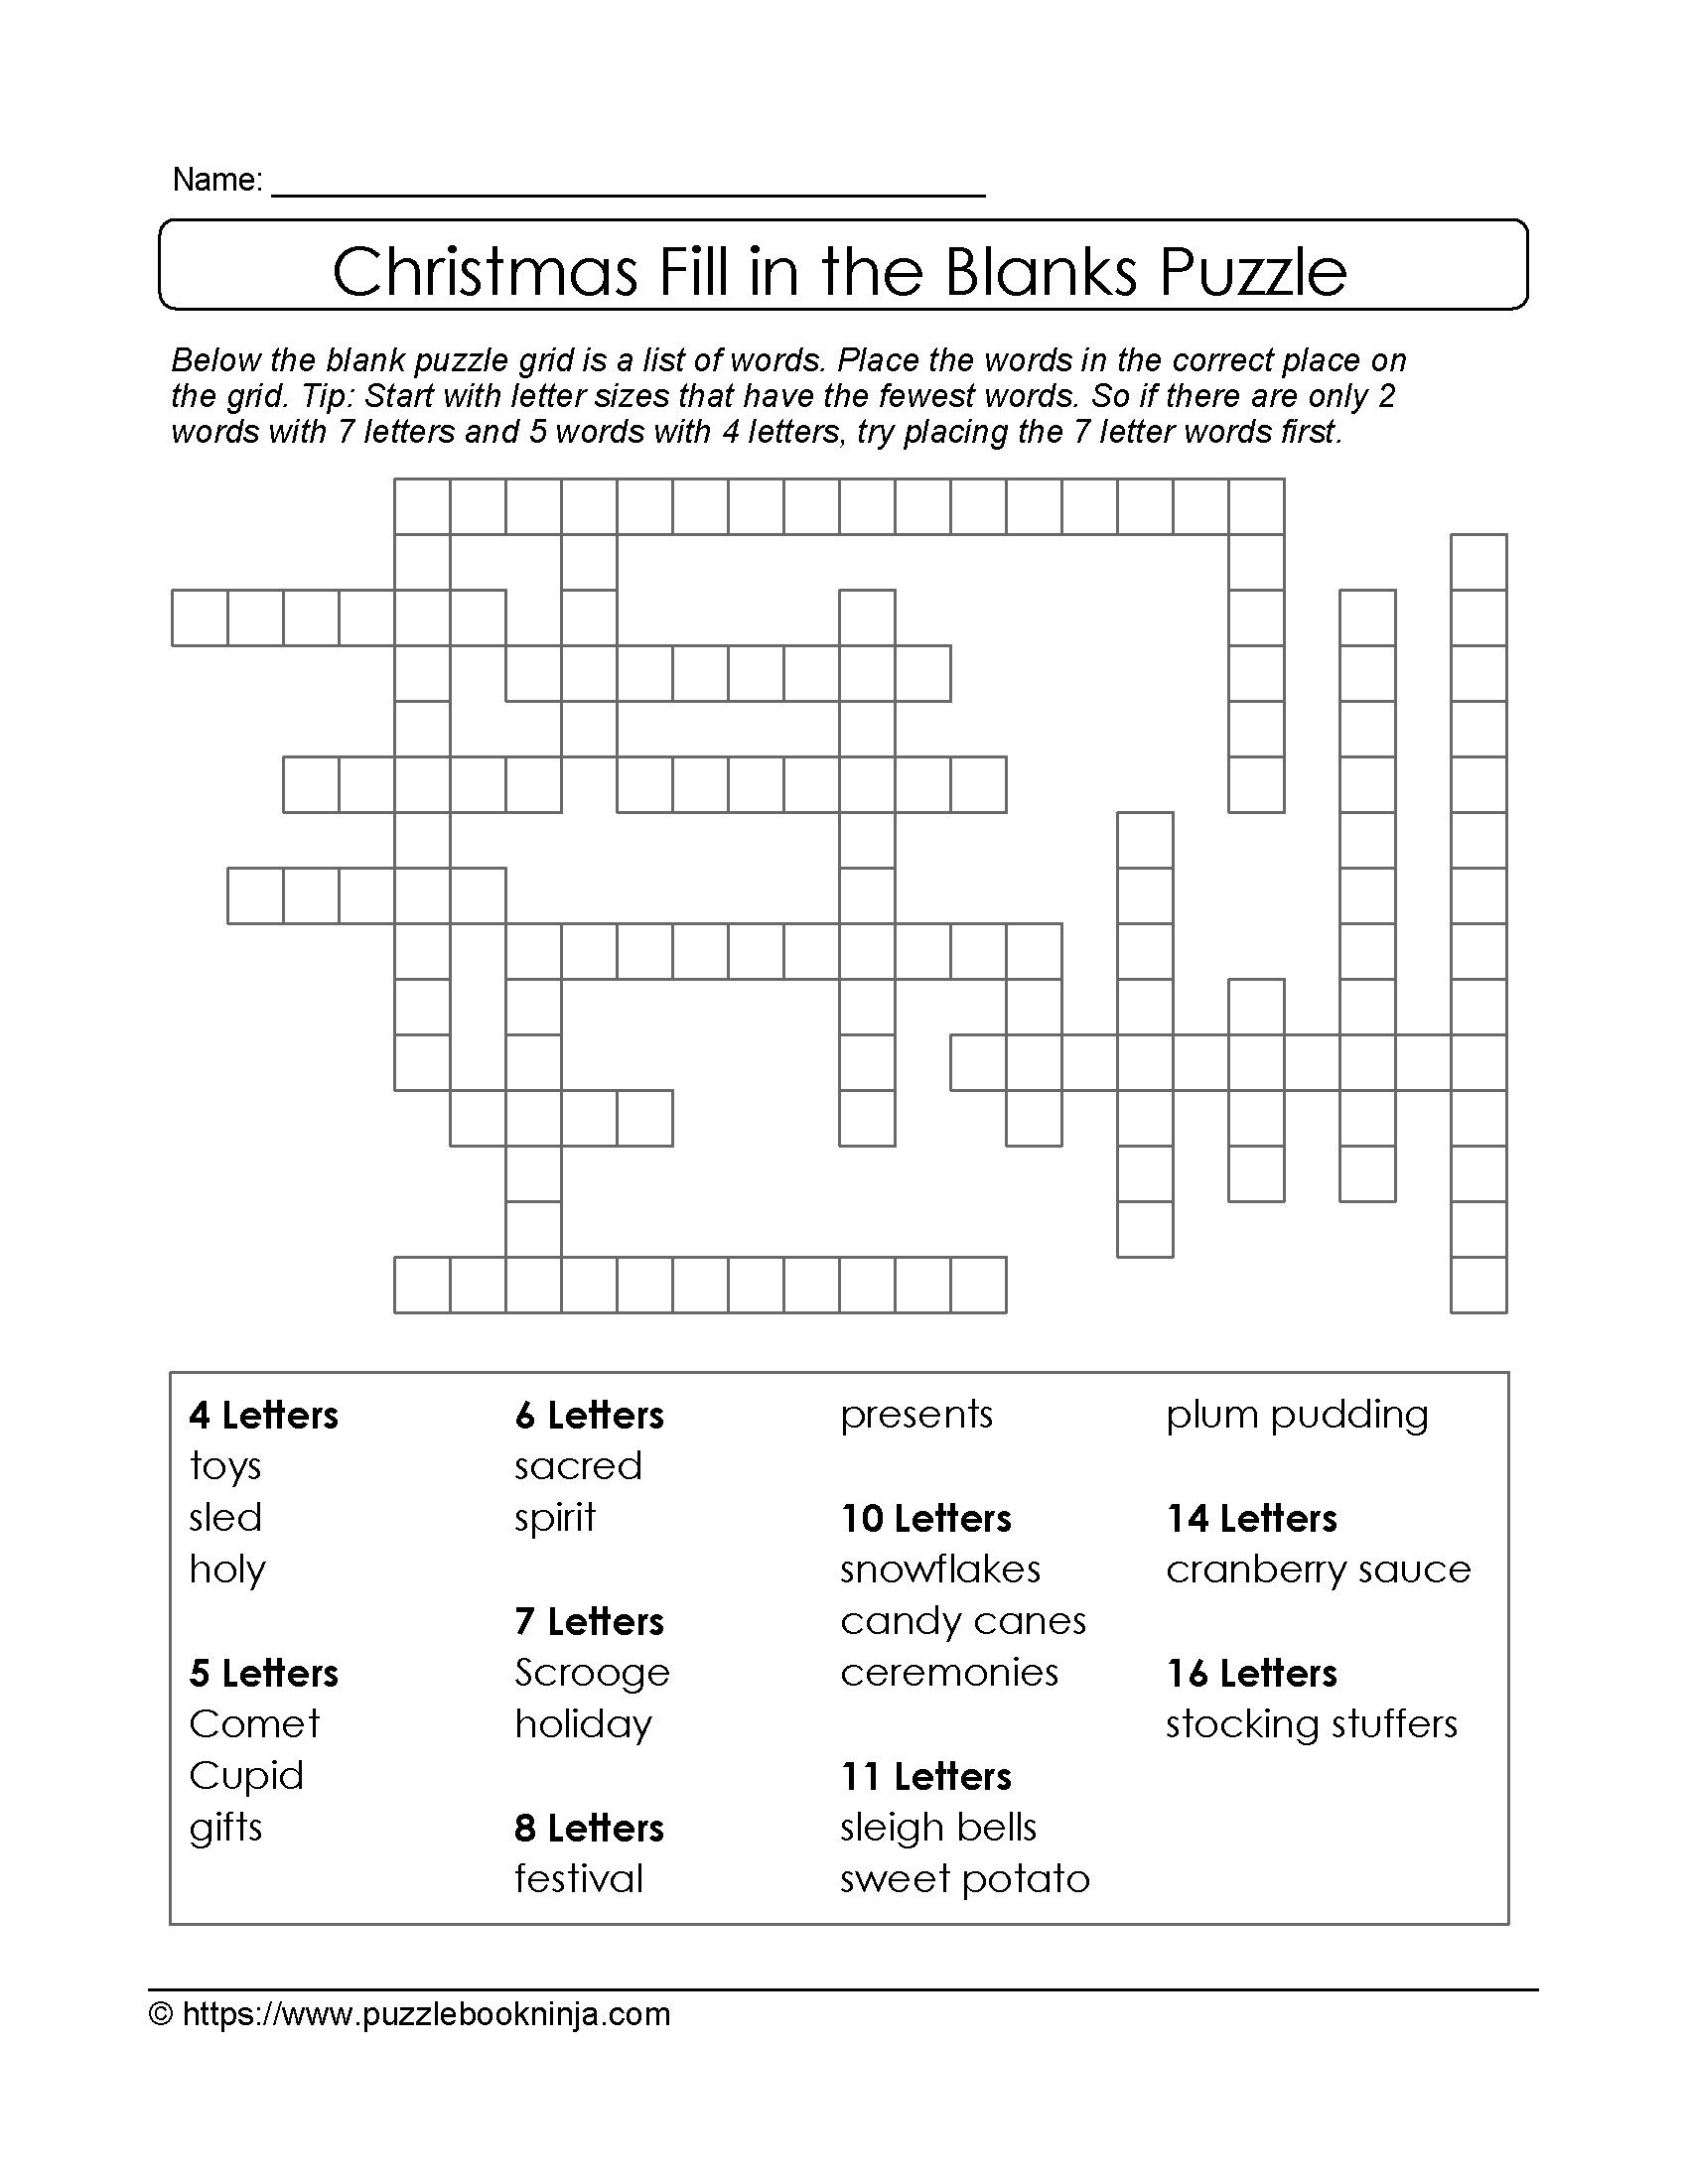 Puzzles To Print. Free Xmas Theme Fill In The Blanks Puzzle - Printable Christmas Puzzles For Adults